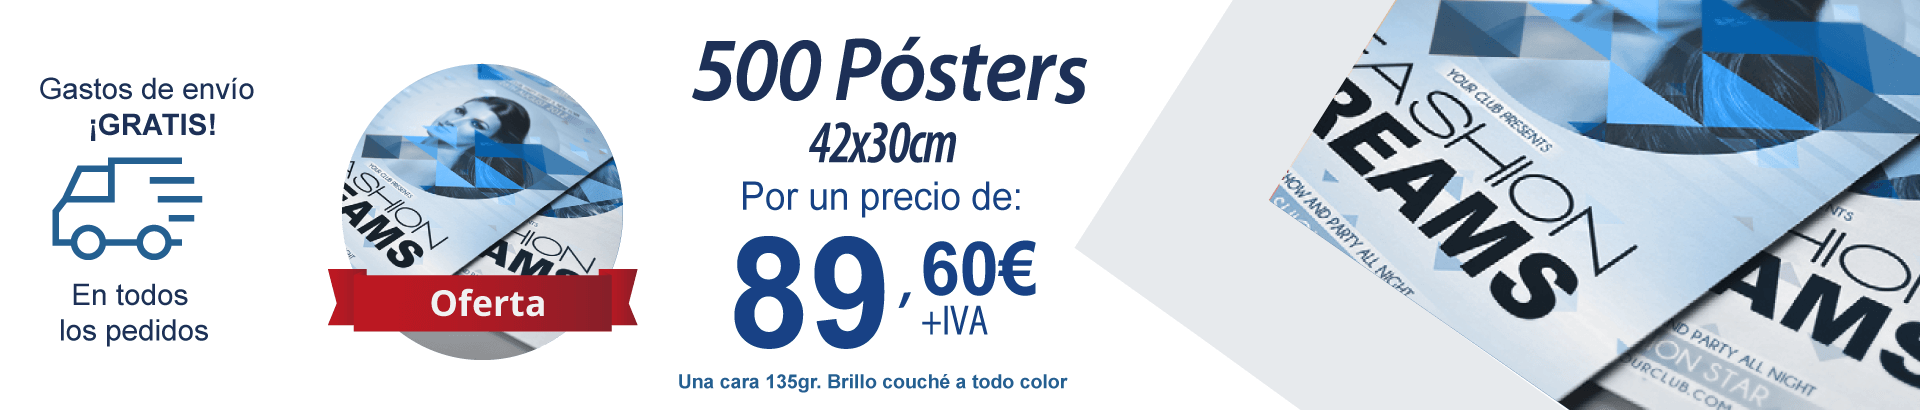 Ofertas 500 posters A3